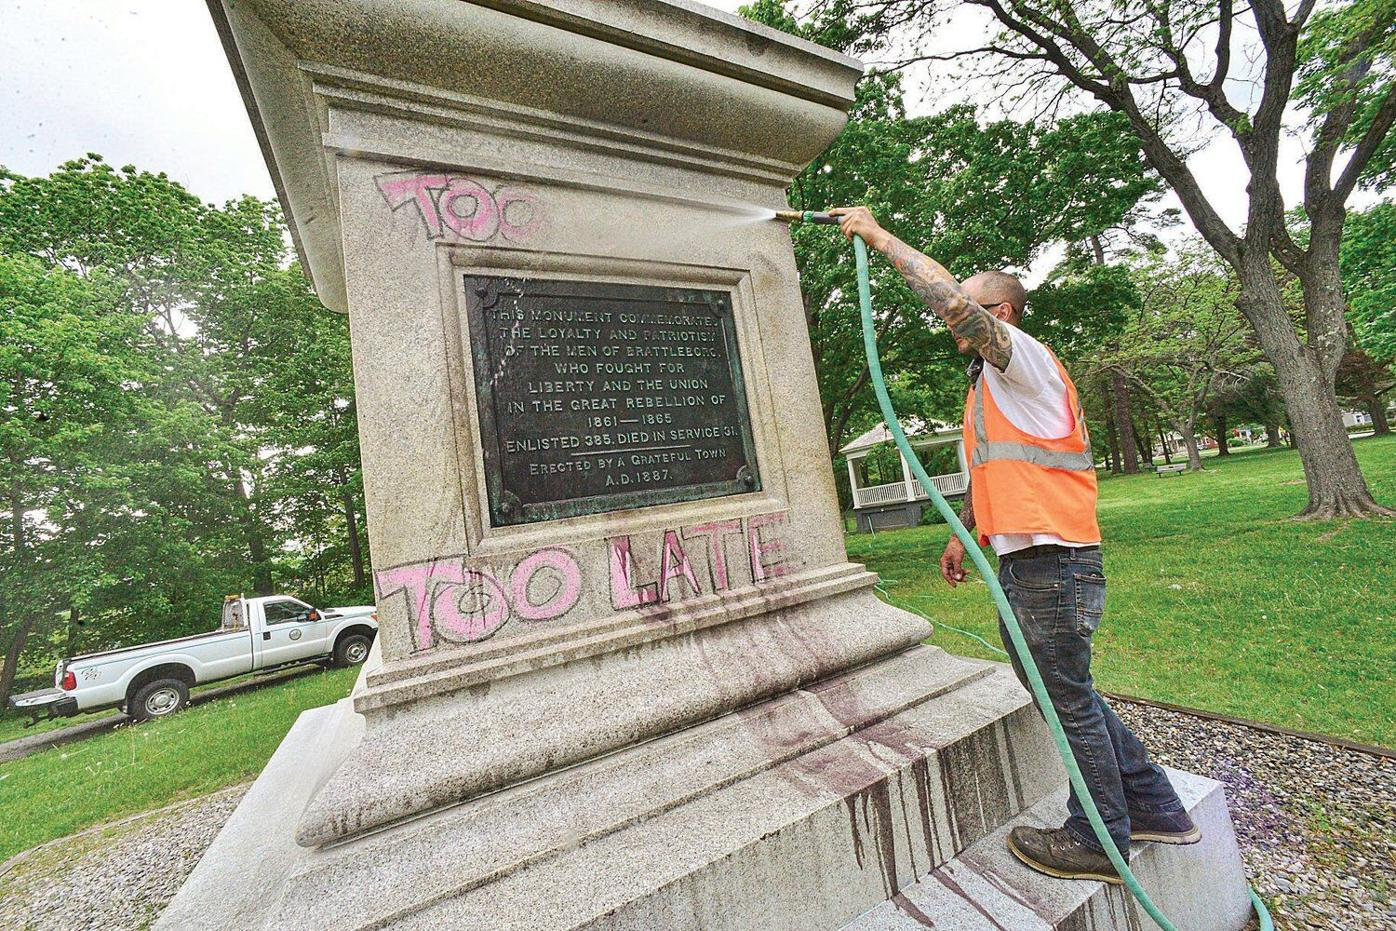 Cleaning another War Memorial